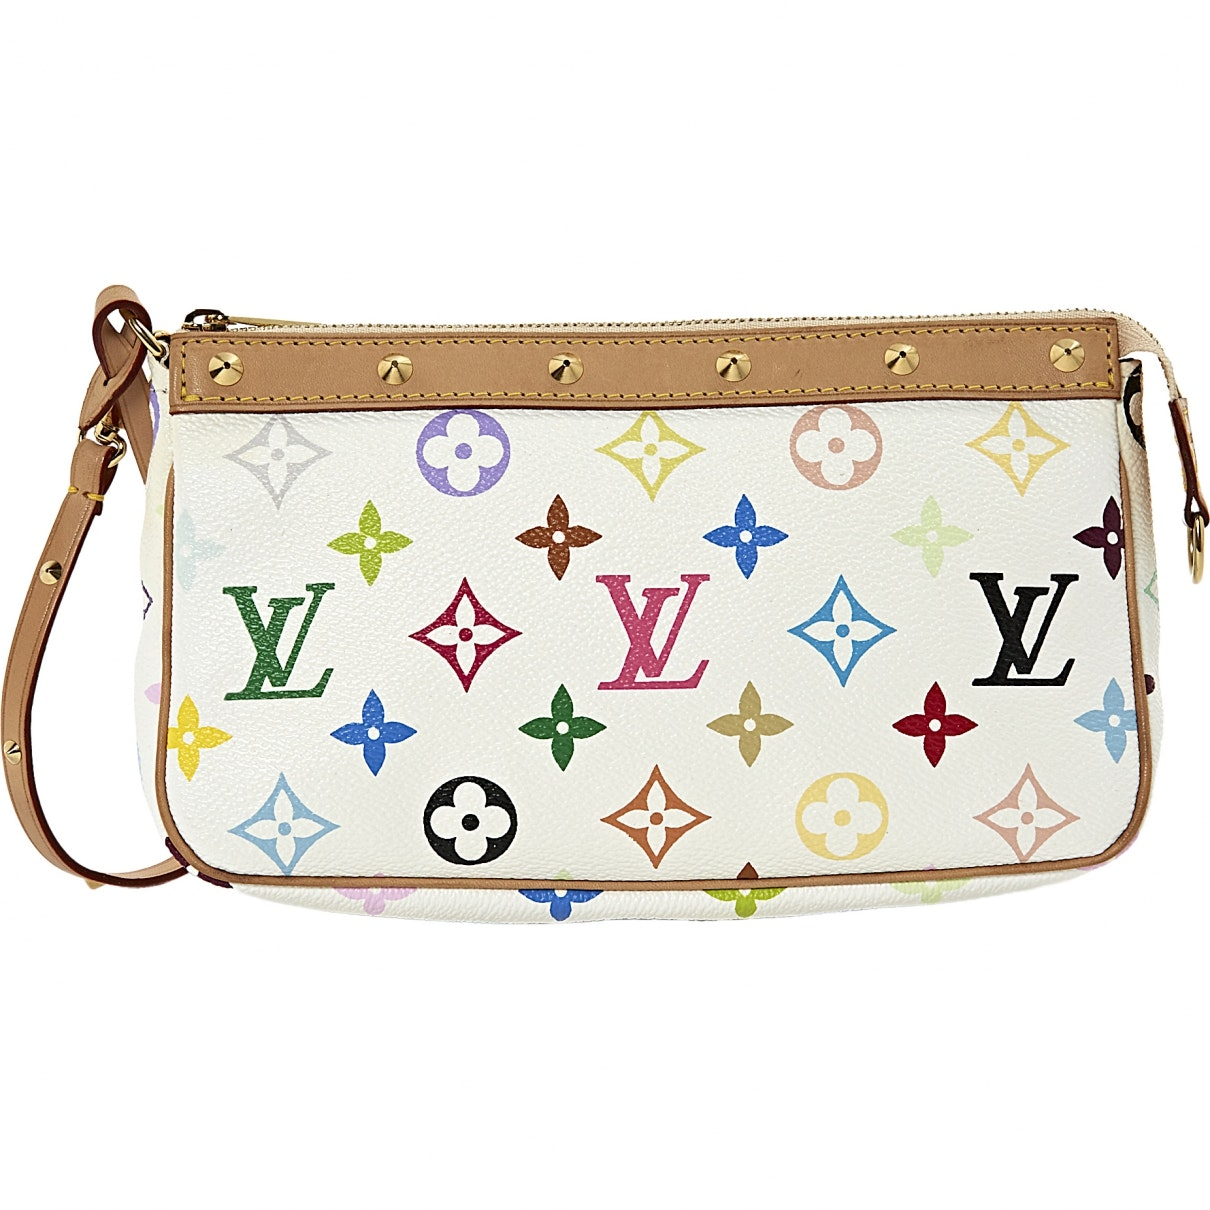 Clutch & Pochettes Donna louis vuitton in sconto 1%